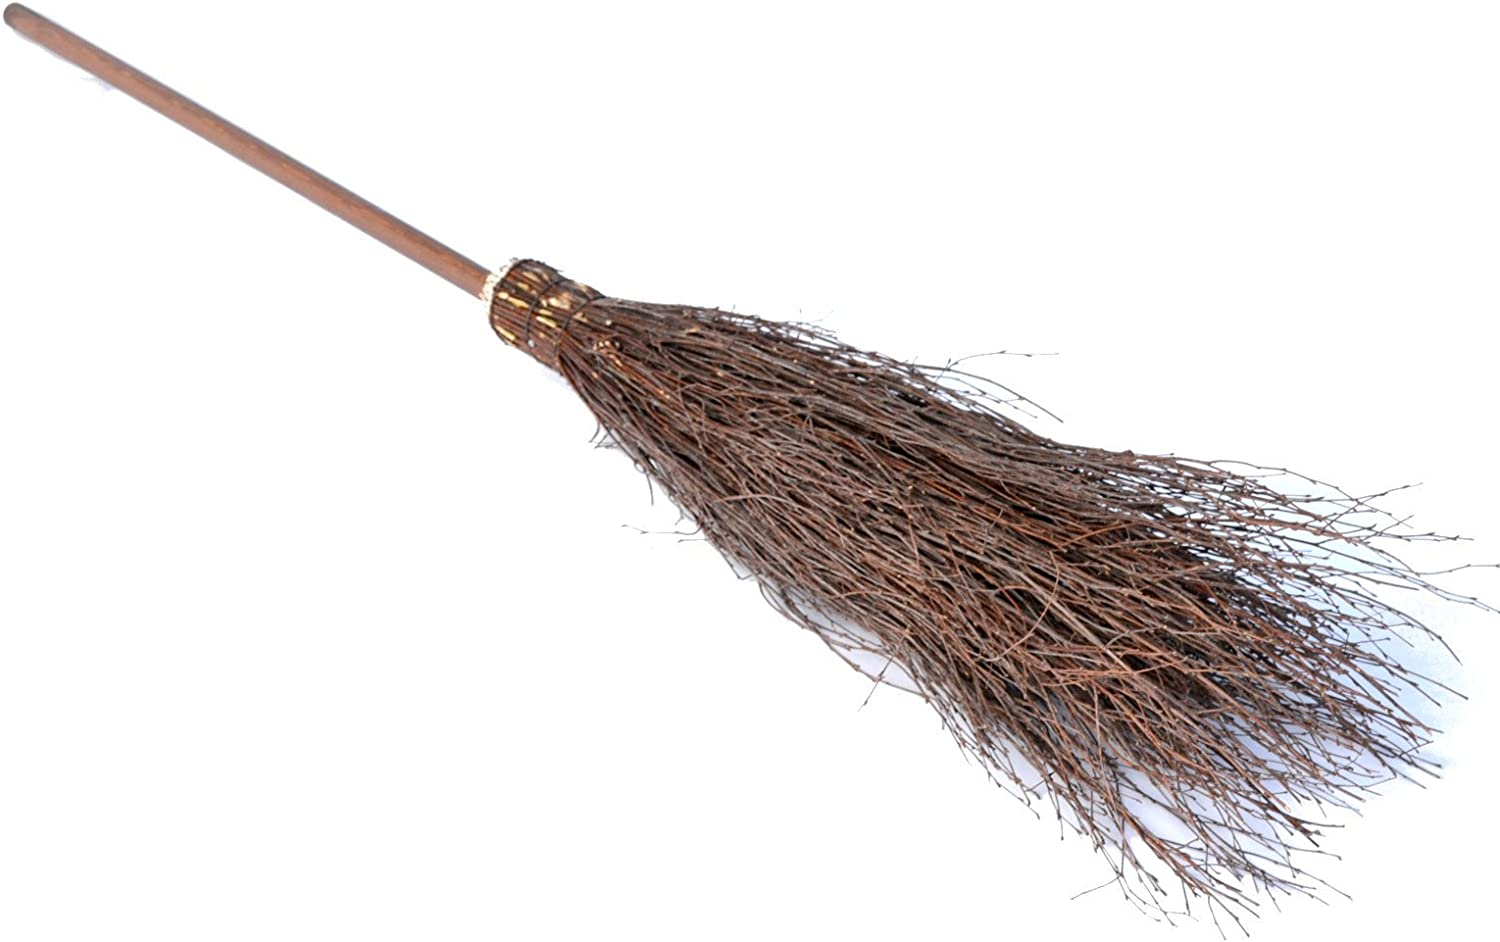 carnival BooGardi Willow Broom 160 x 25 cm with handle household and floor Wickerbroom as witches broom for Halloween